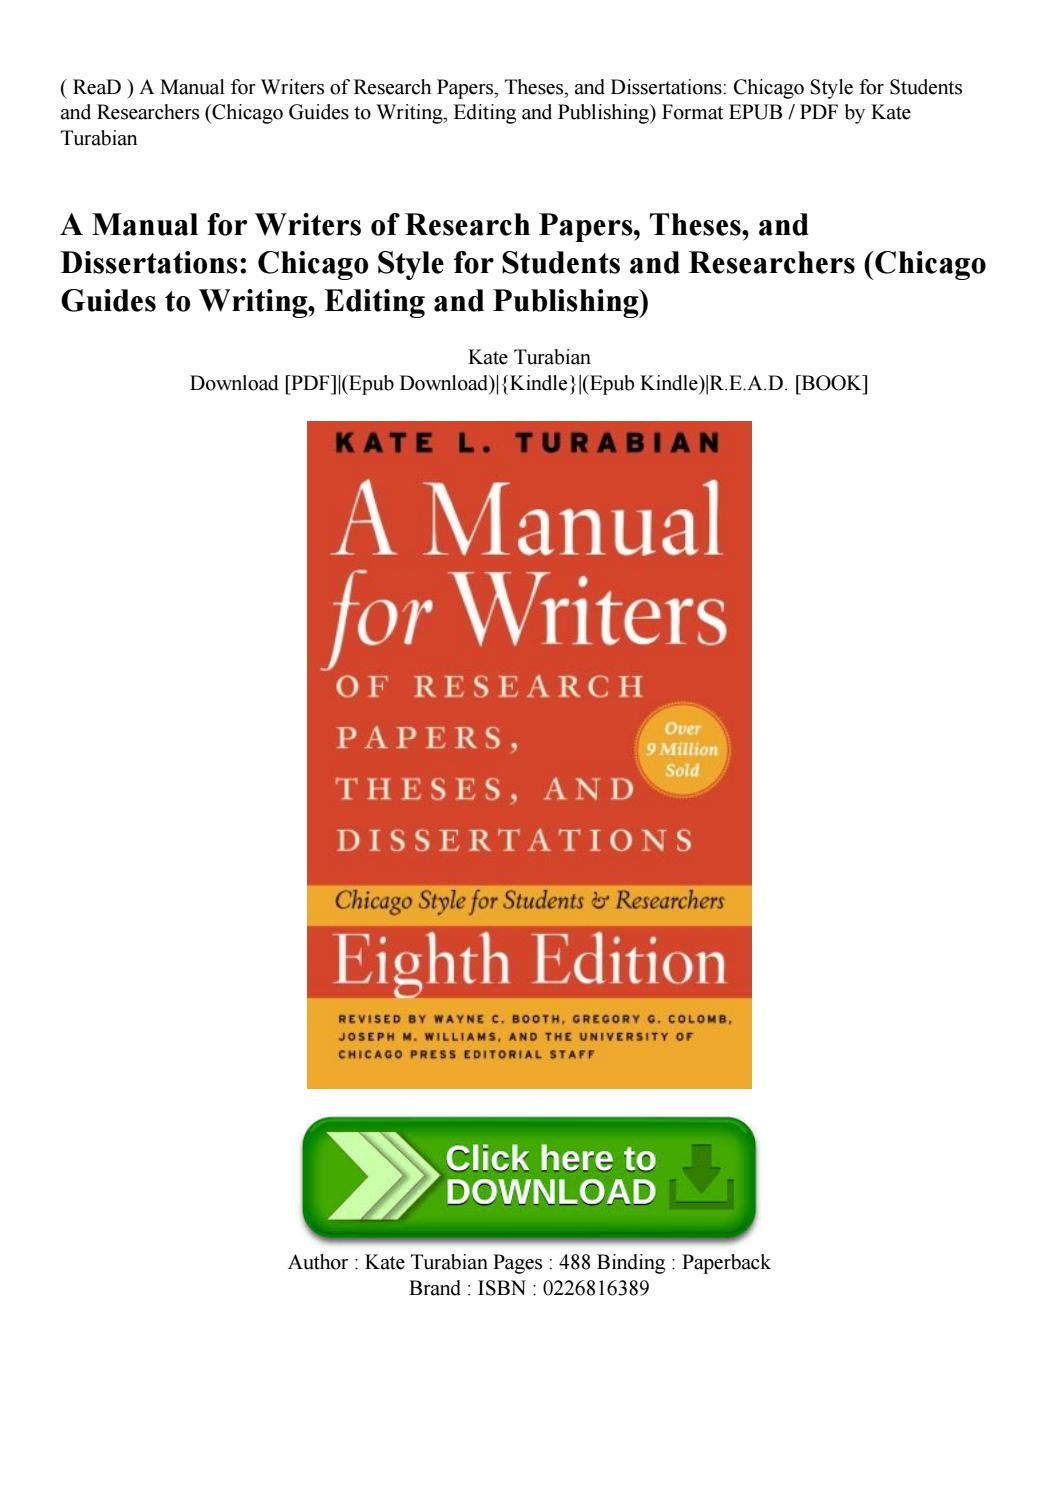 010 Research Paper Manual For Writers Of Papers Theses And Dissertations Page 1 Sensational A 8th Edition Pdf Eighth Full